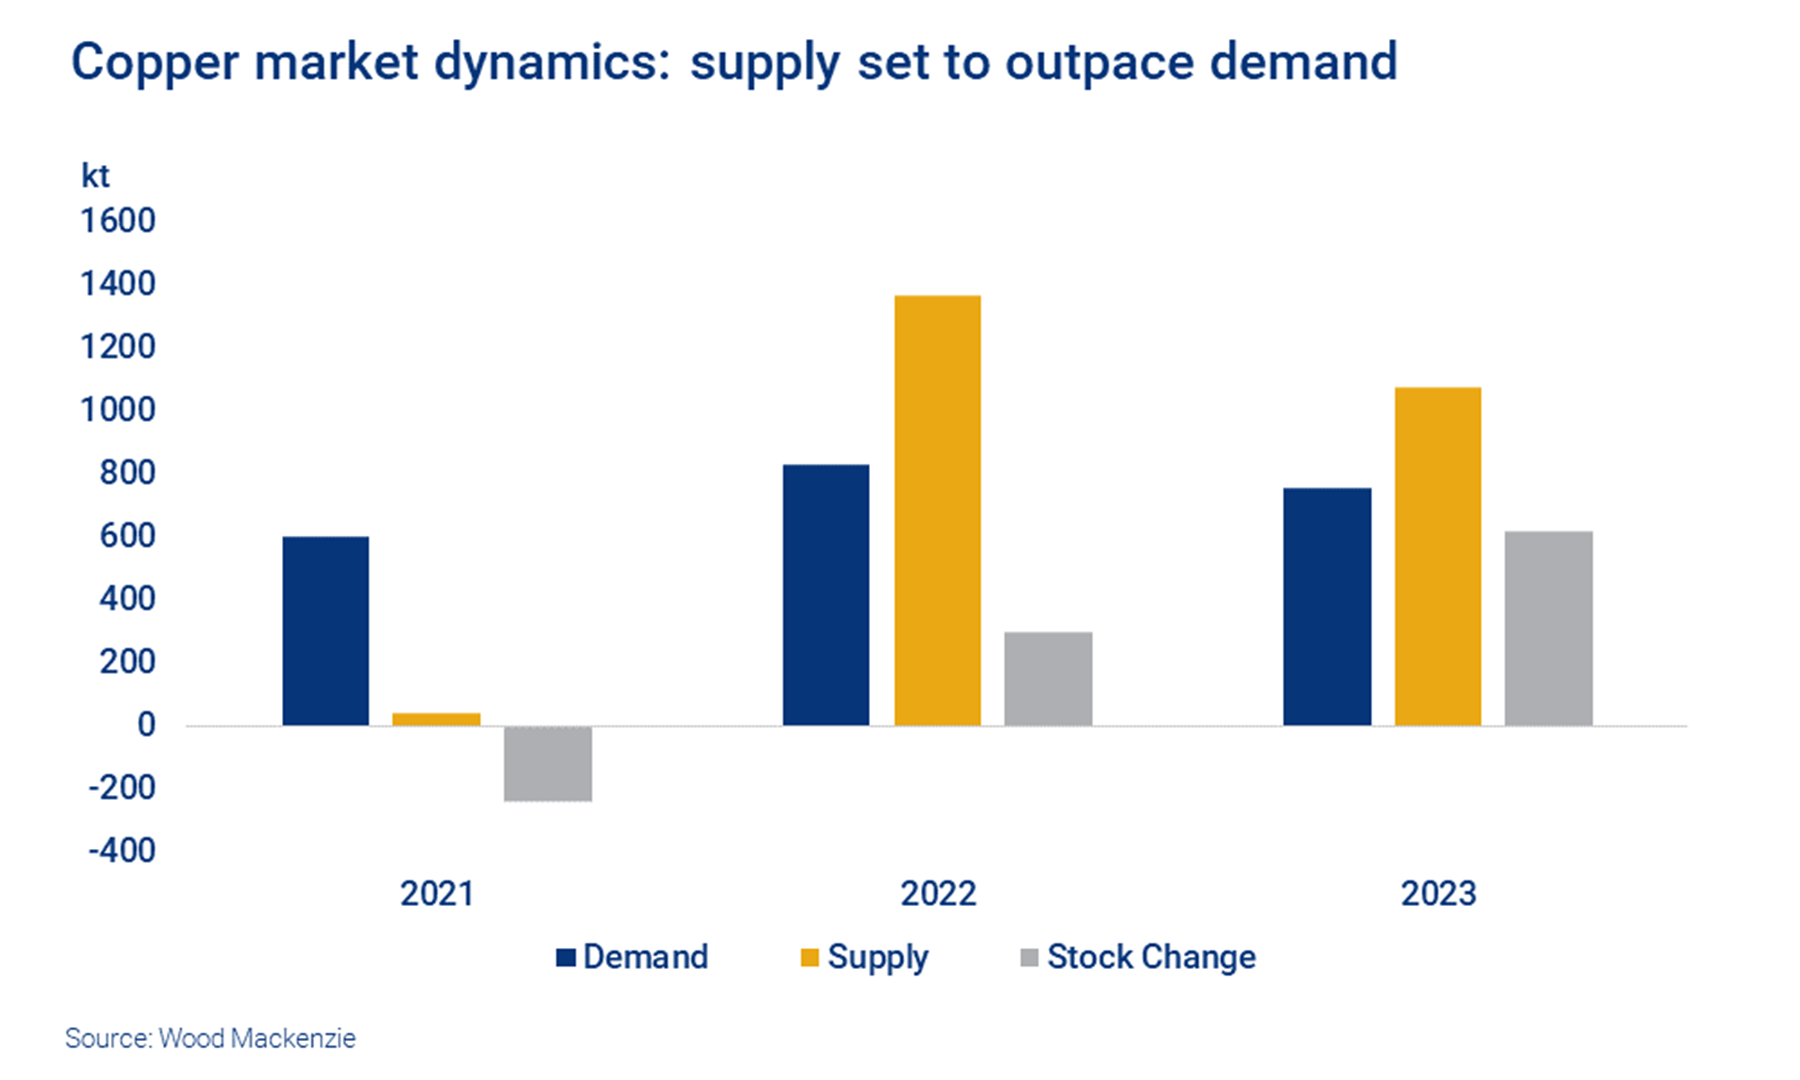 Copper market dynamics: supply set to outpace demand